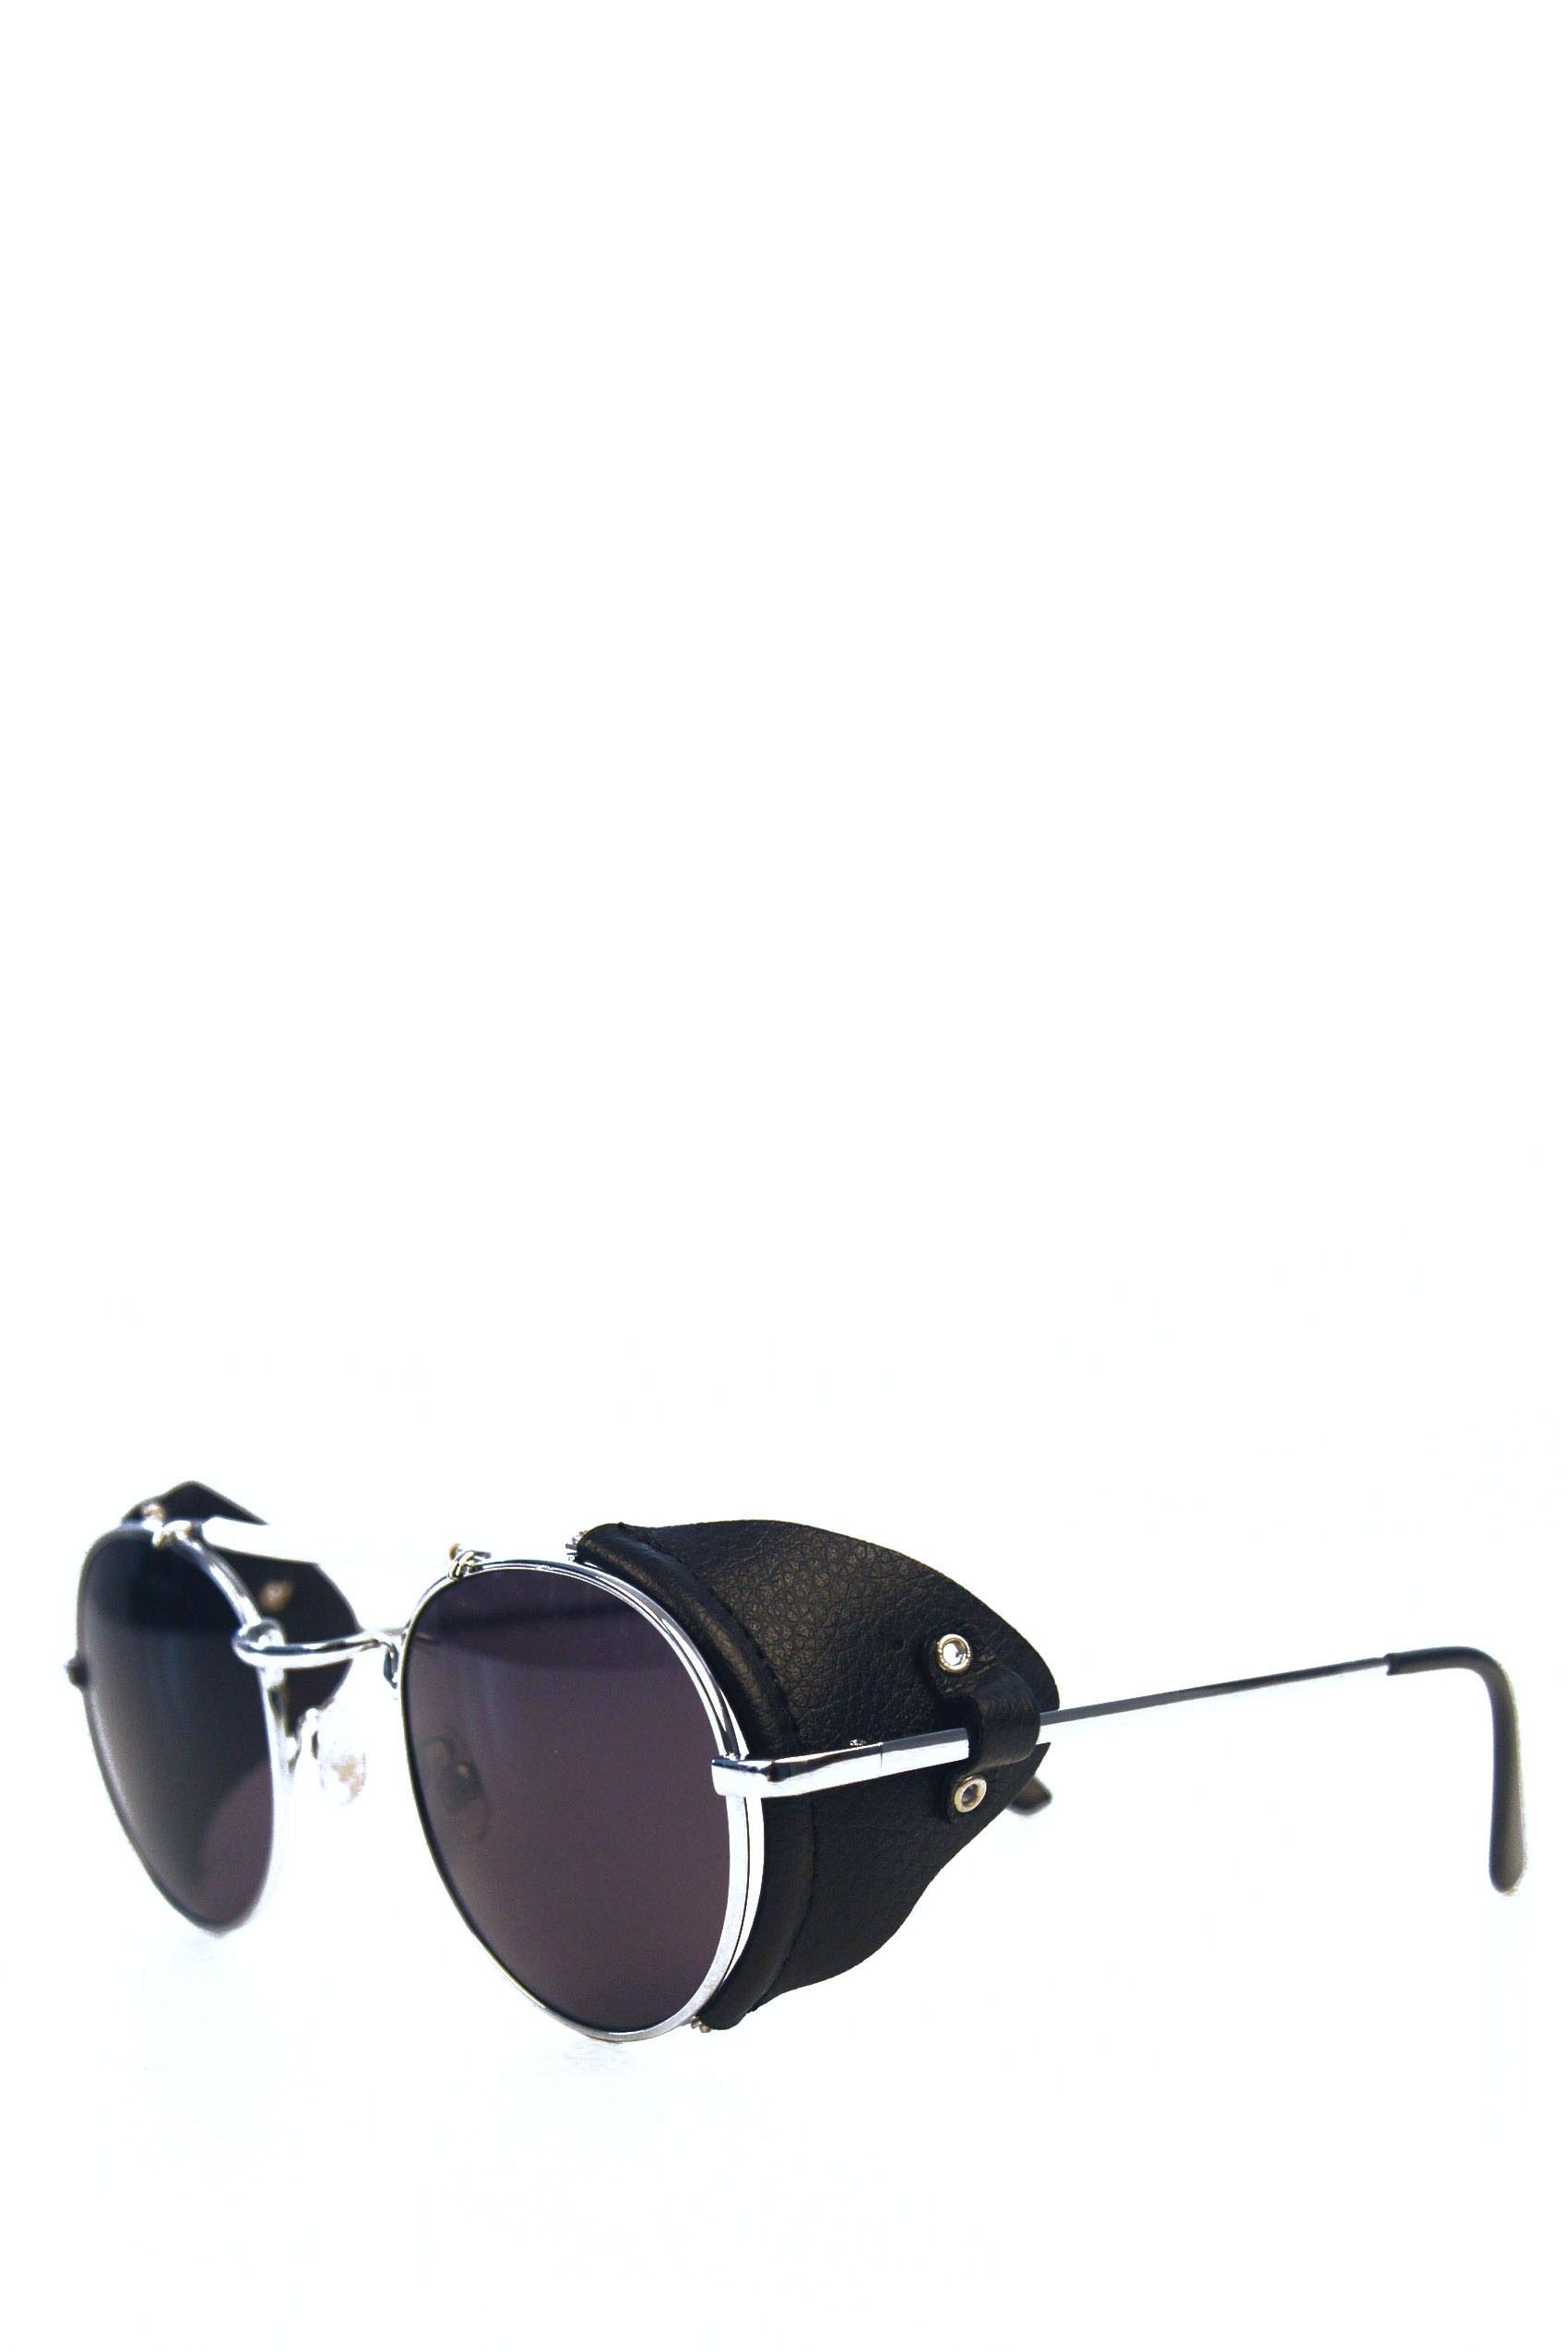 7cf3e959bd9 TECHNOTRONIC Metal and Leather Sunglasses - Silver tone sunglasses by  Spitfire. Featuring rounded frames